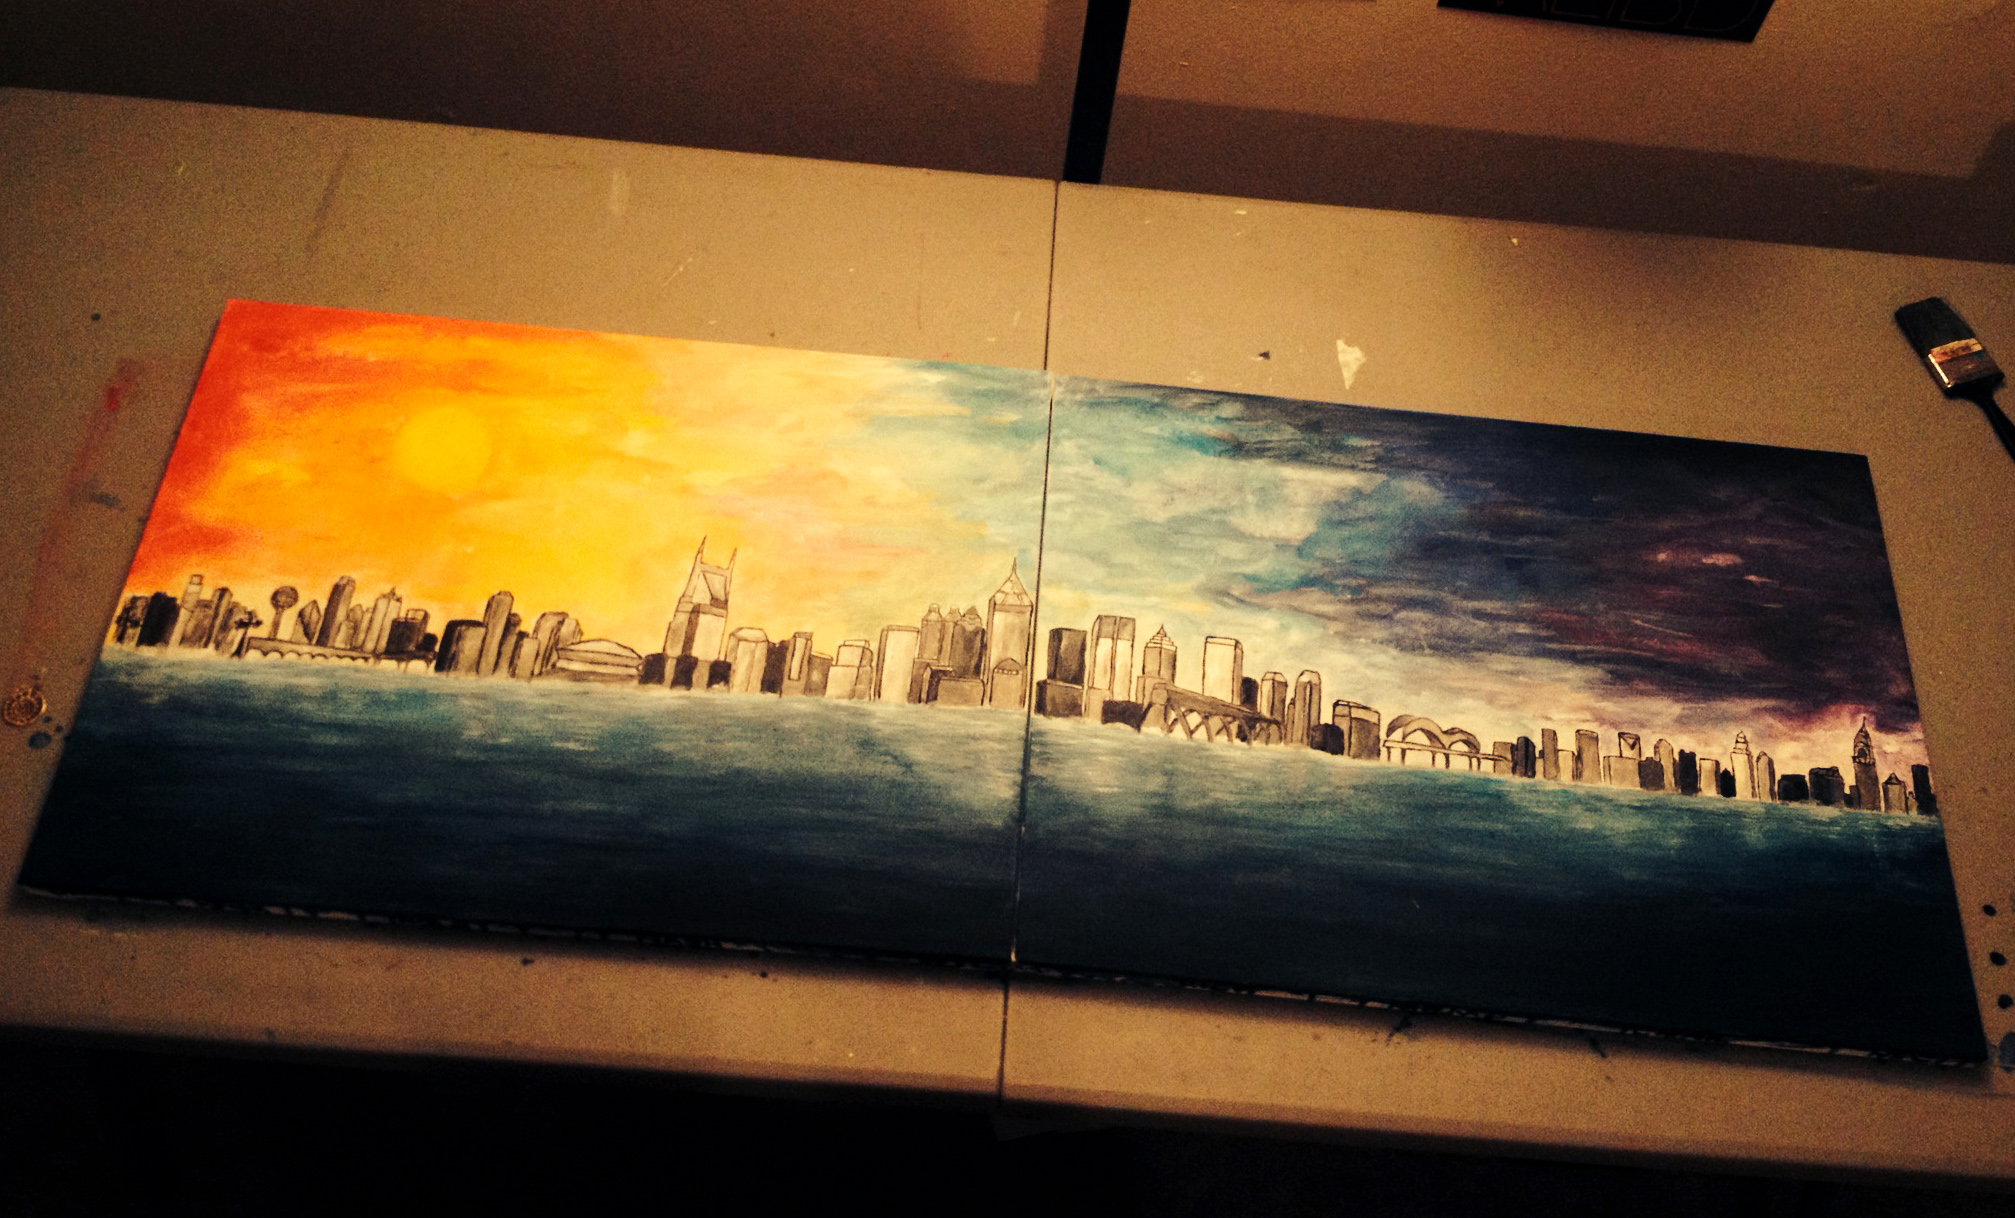 A skyline that combines all the cities I travelled to in the year 2014.  Left to Right:  Los Angeles, Knoxville, New Orleans, Nashville, Atlanta, Richmond, Memphis, Charlotte and NYC.